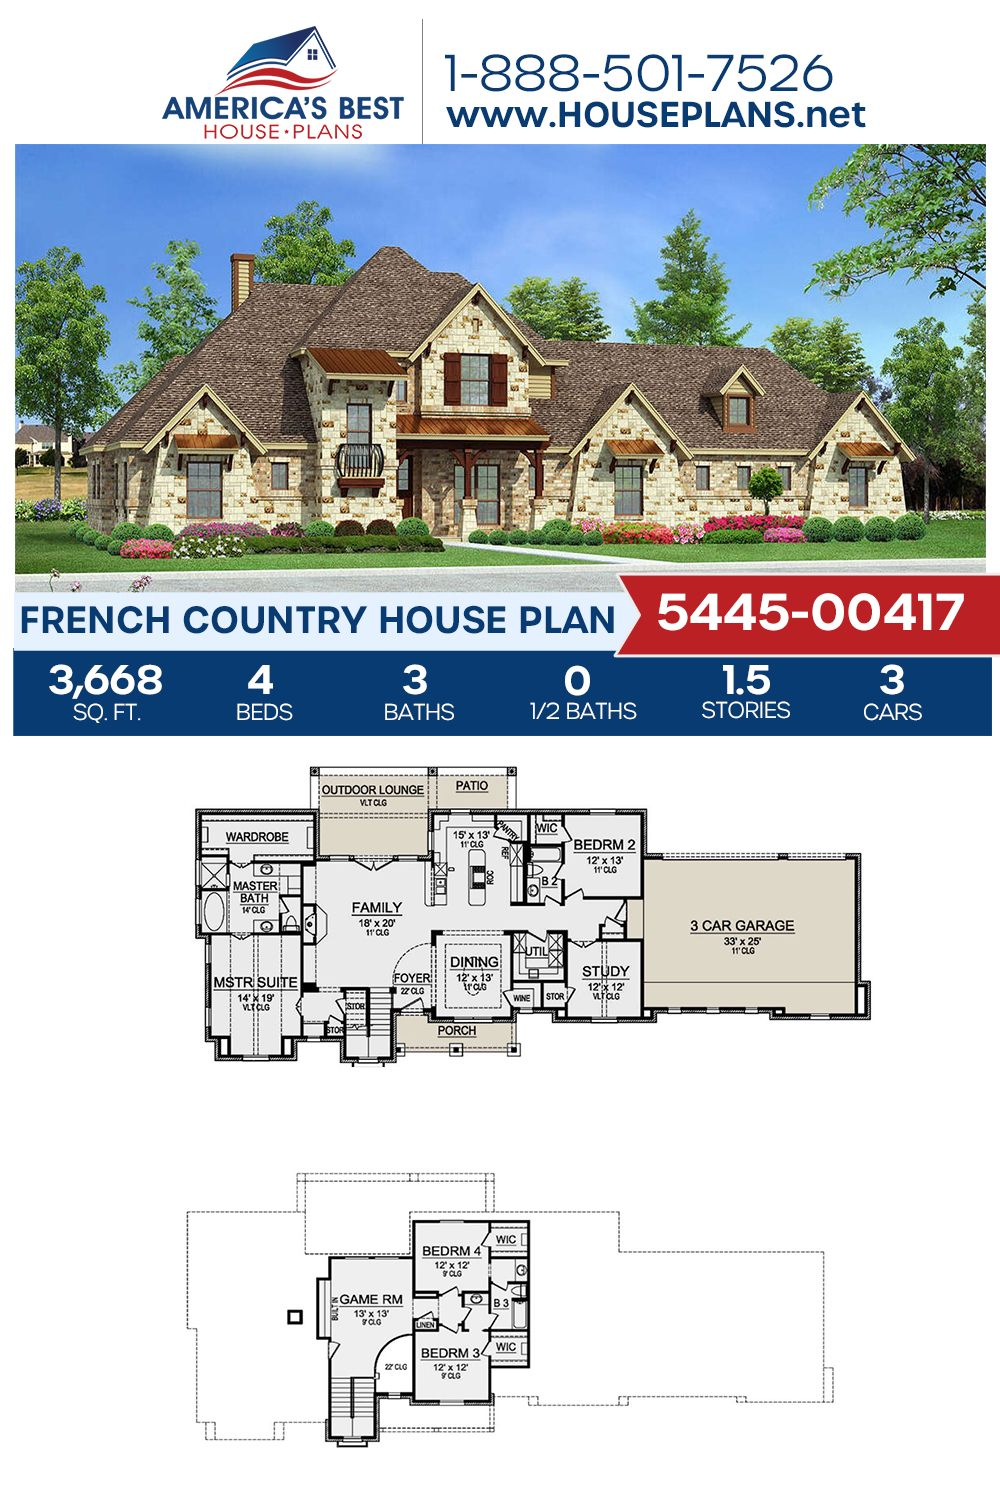 House Plan 5445 00417 French Country Plan 3 668 Square Feet 4 Bedrooms 3 Bathrooms In 2021 French Country House Plans French Country House Victorian House Plans